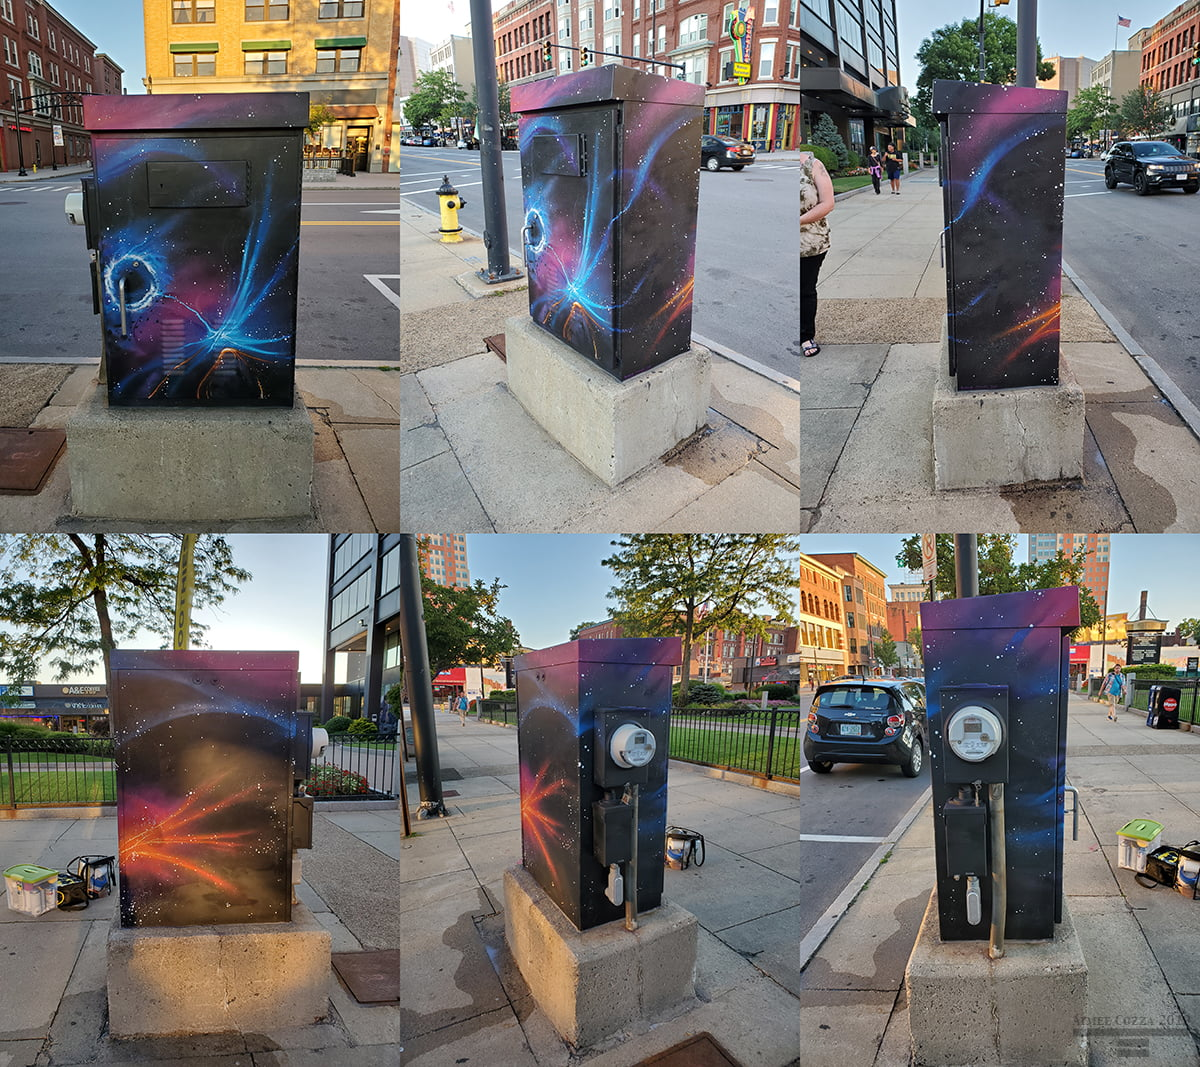 Utility Box Mural, 1000 Elm St, Manchester, NH